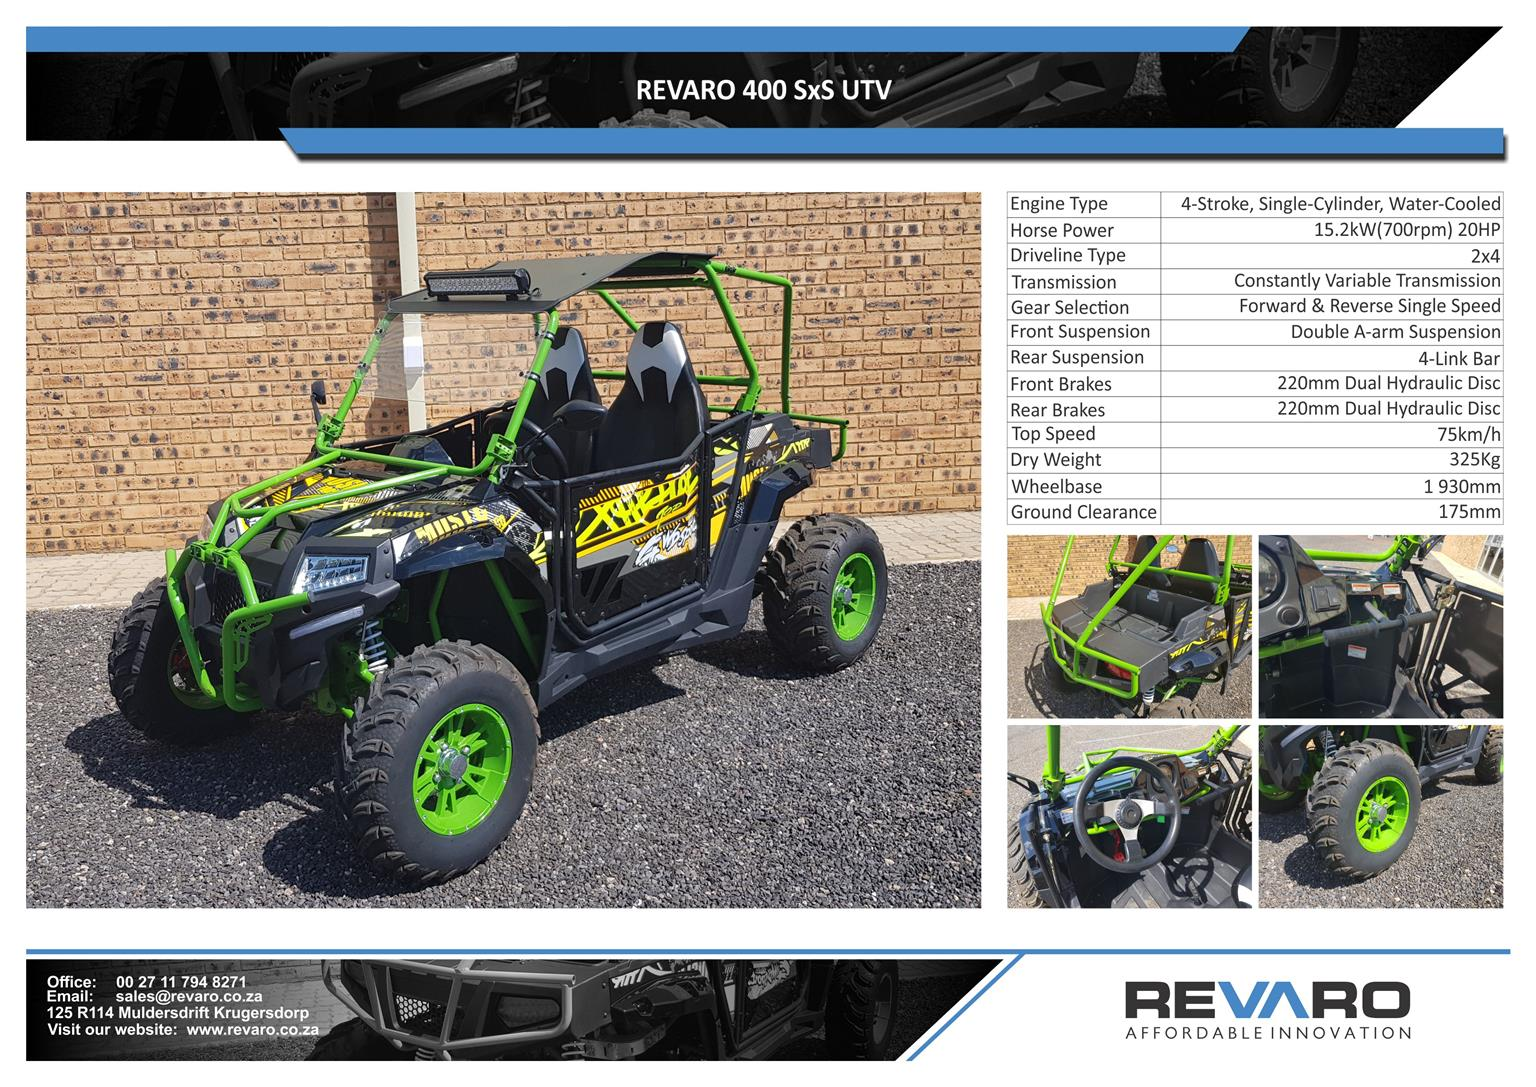 Revaro 400 side by side quad